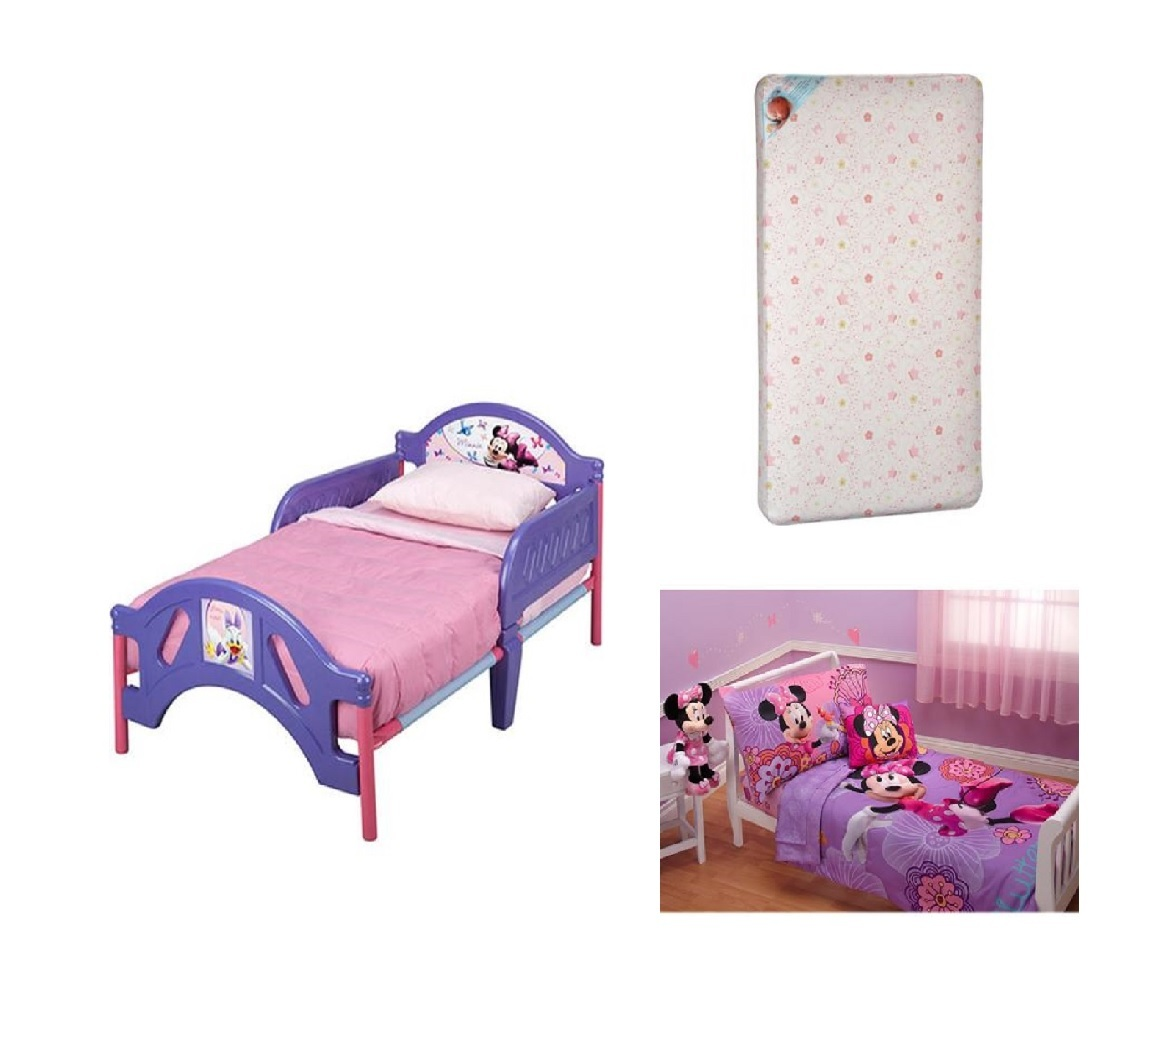 Toddler Minnie Mouse Bed Set